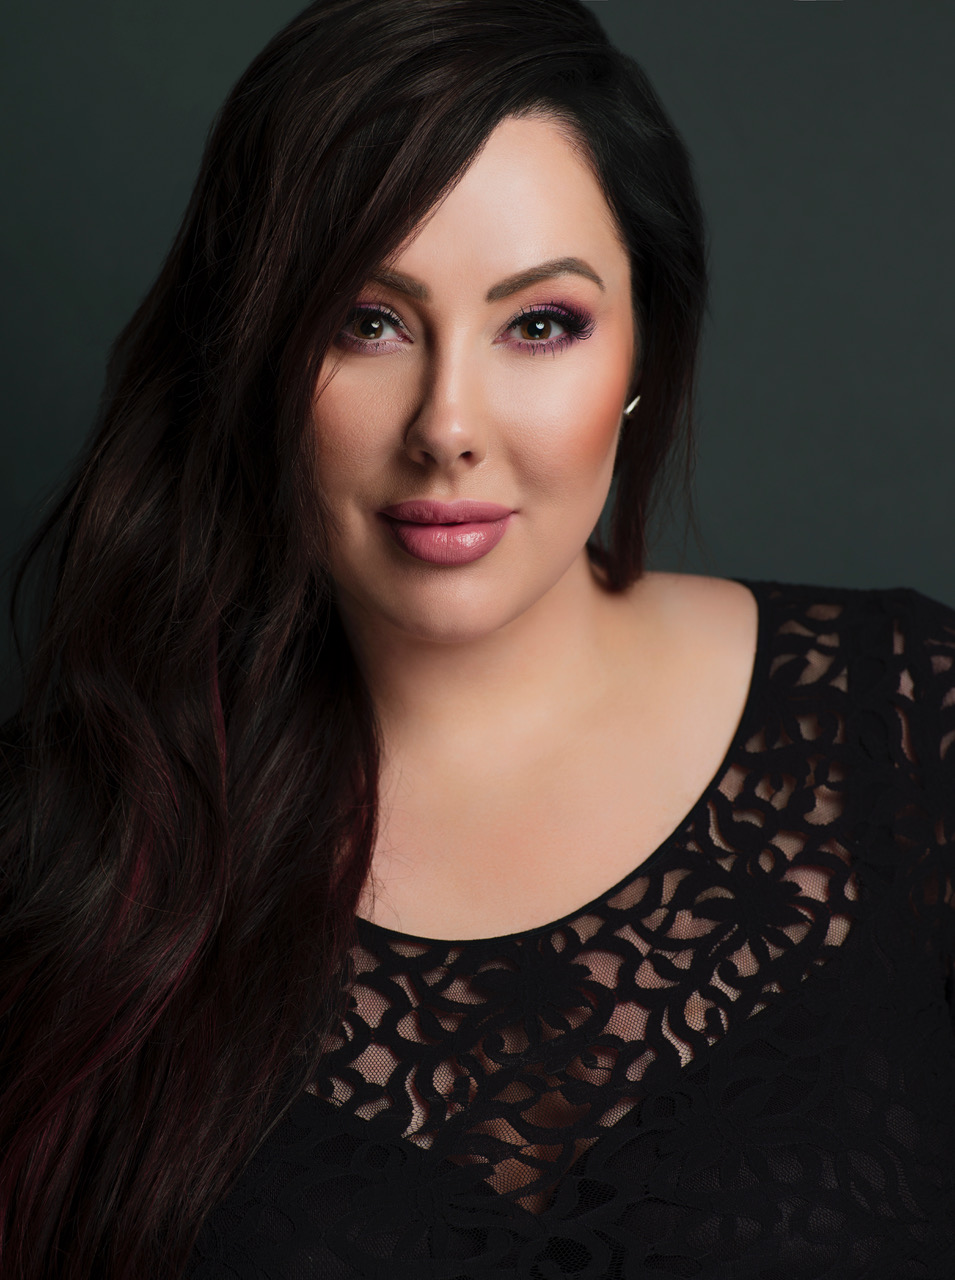 5 Rules For Life: Makeup Geek's Marlena Stell